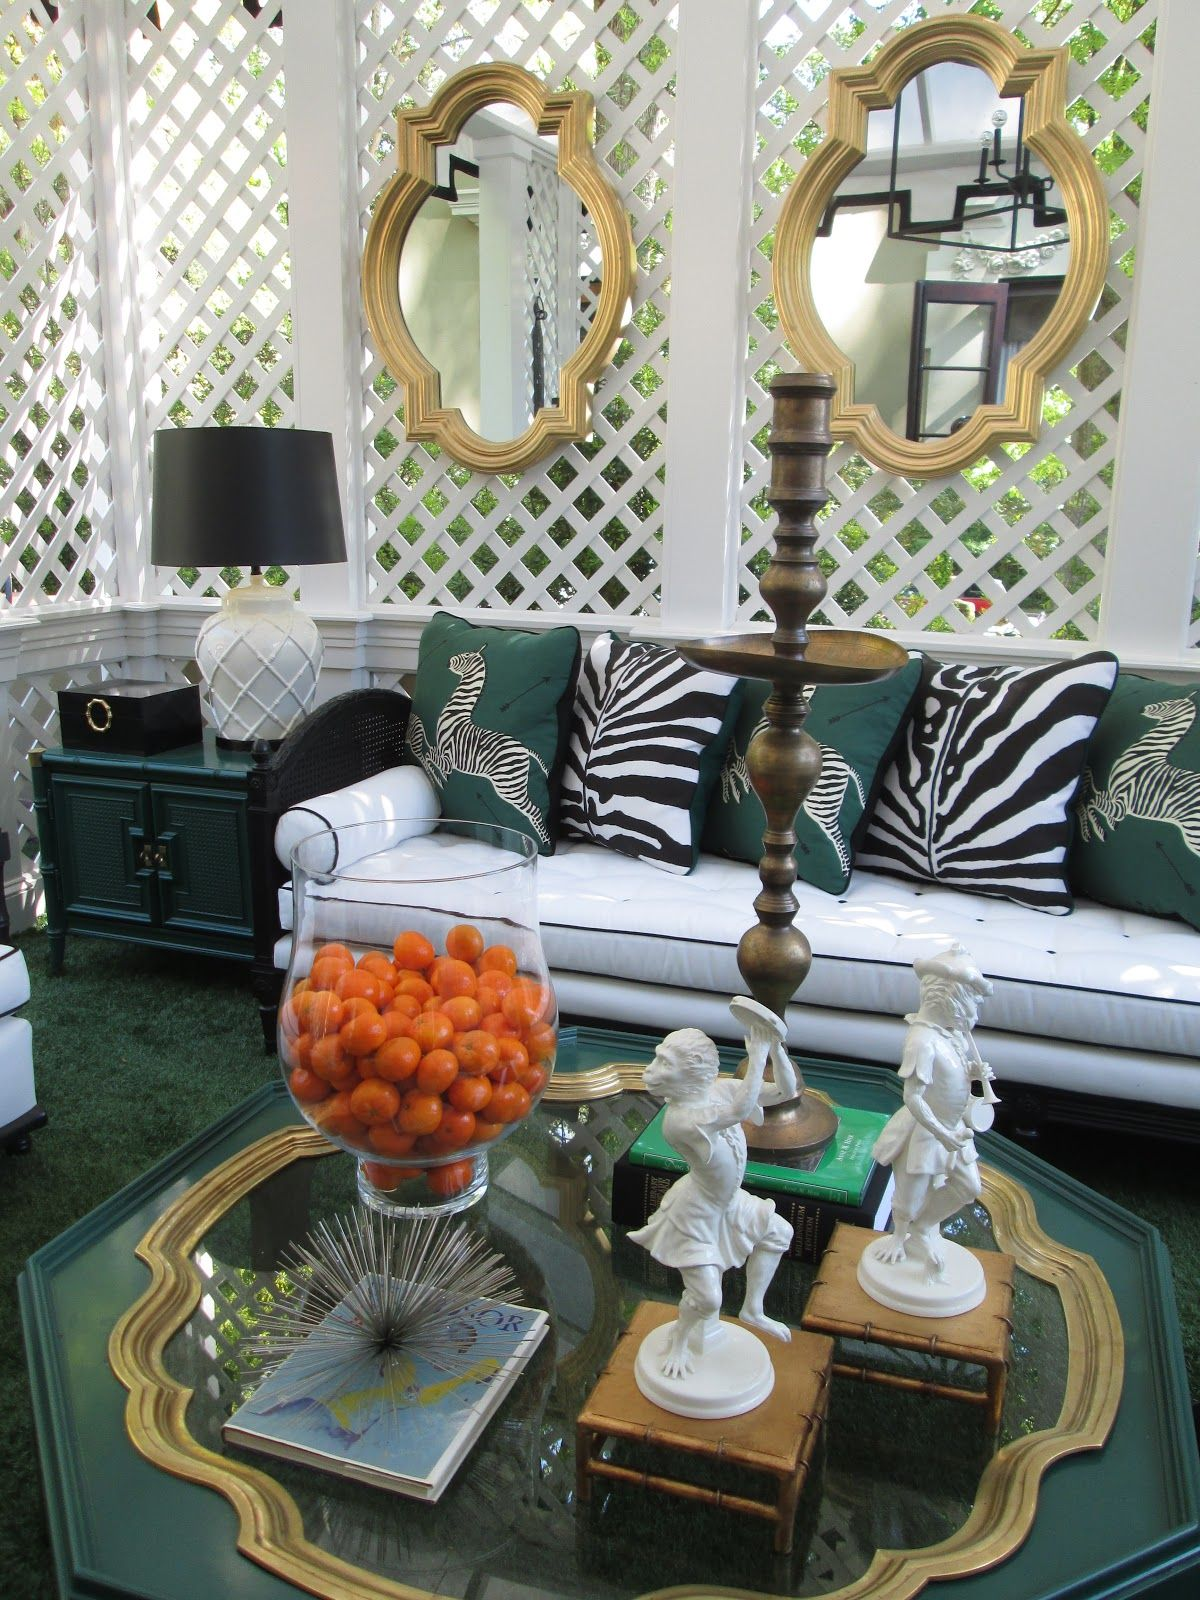 2014 aso decorators show house chinoiserie chic chinoiserie and